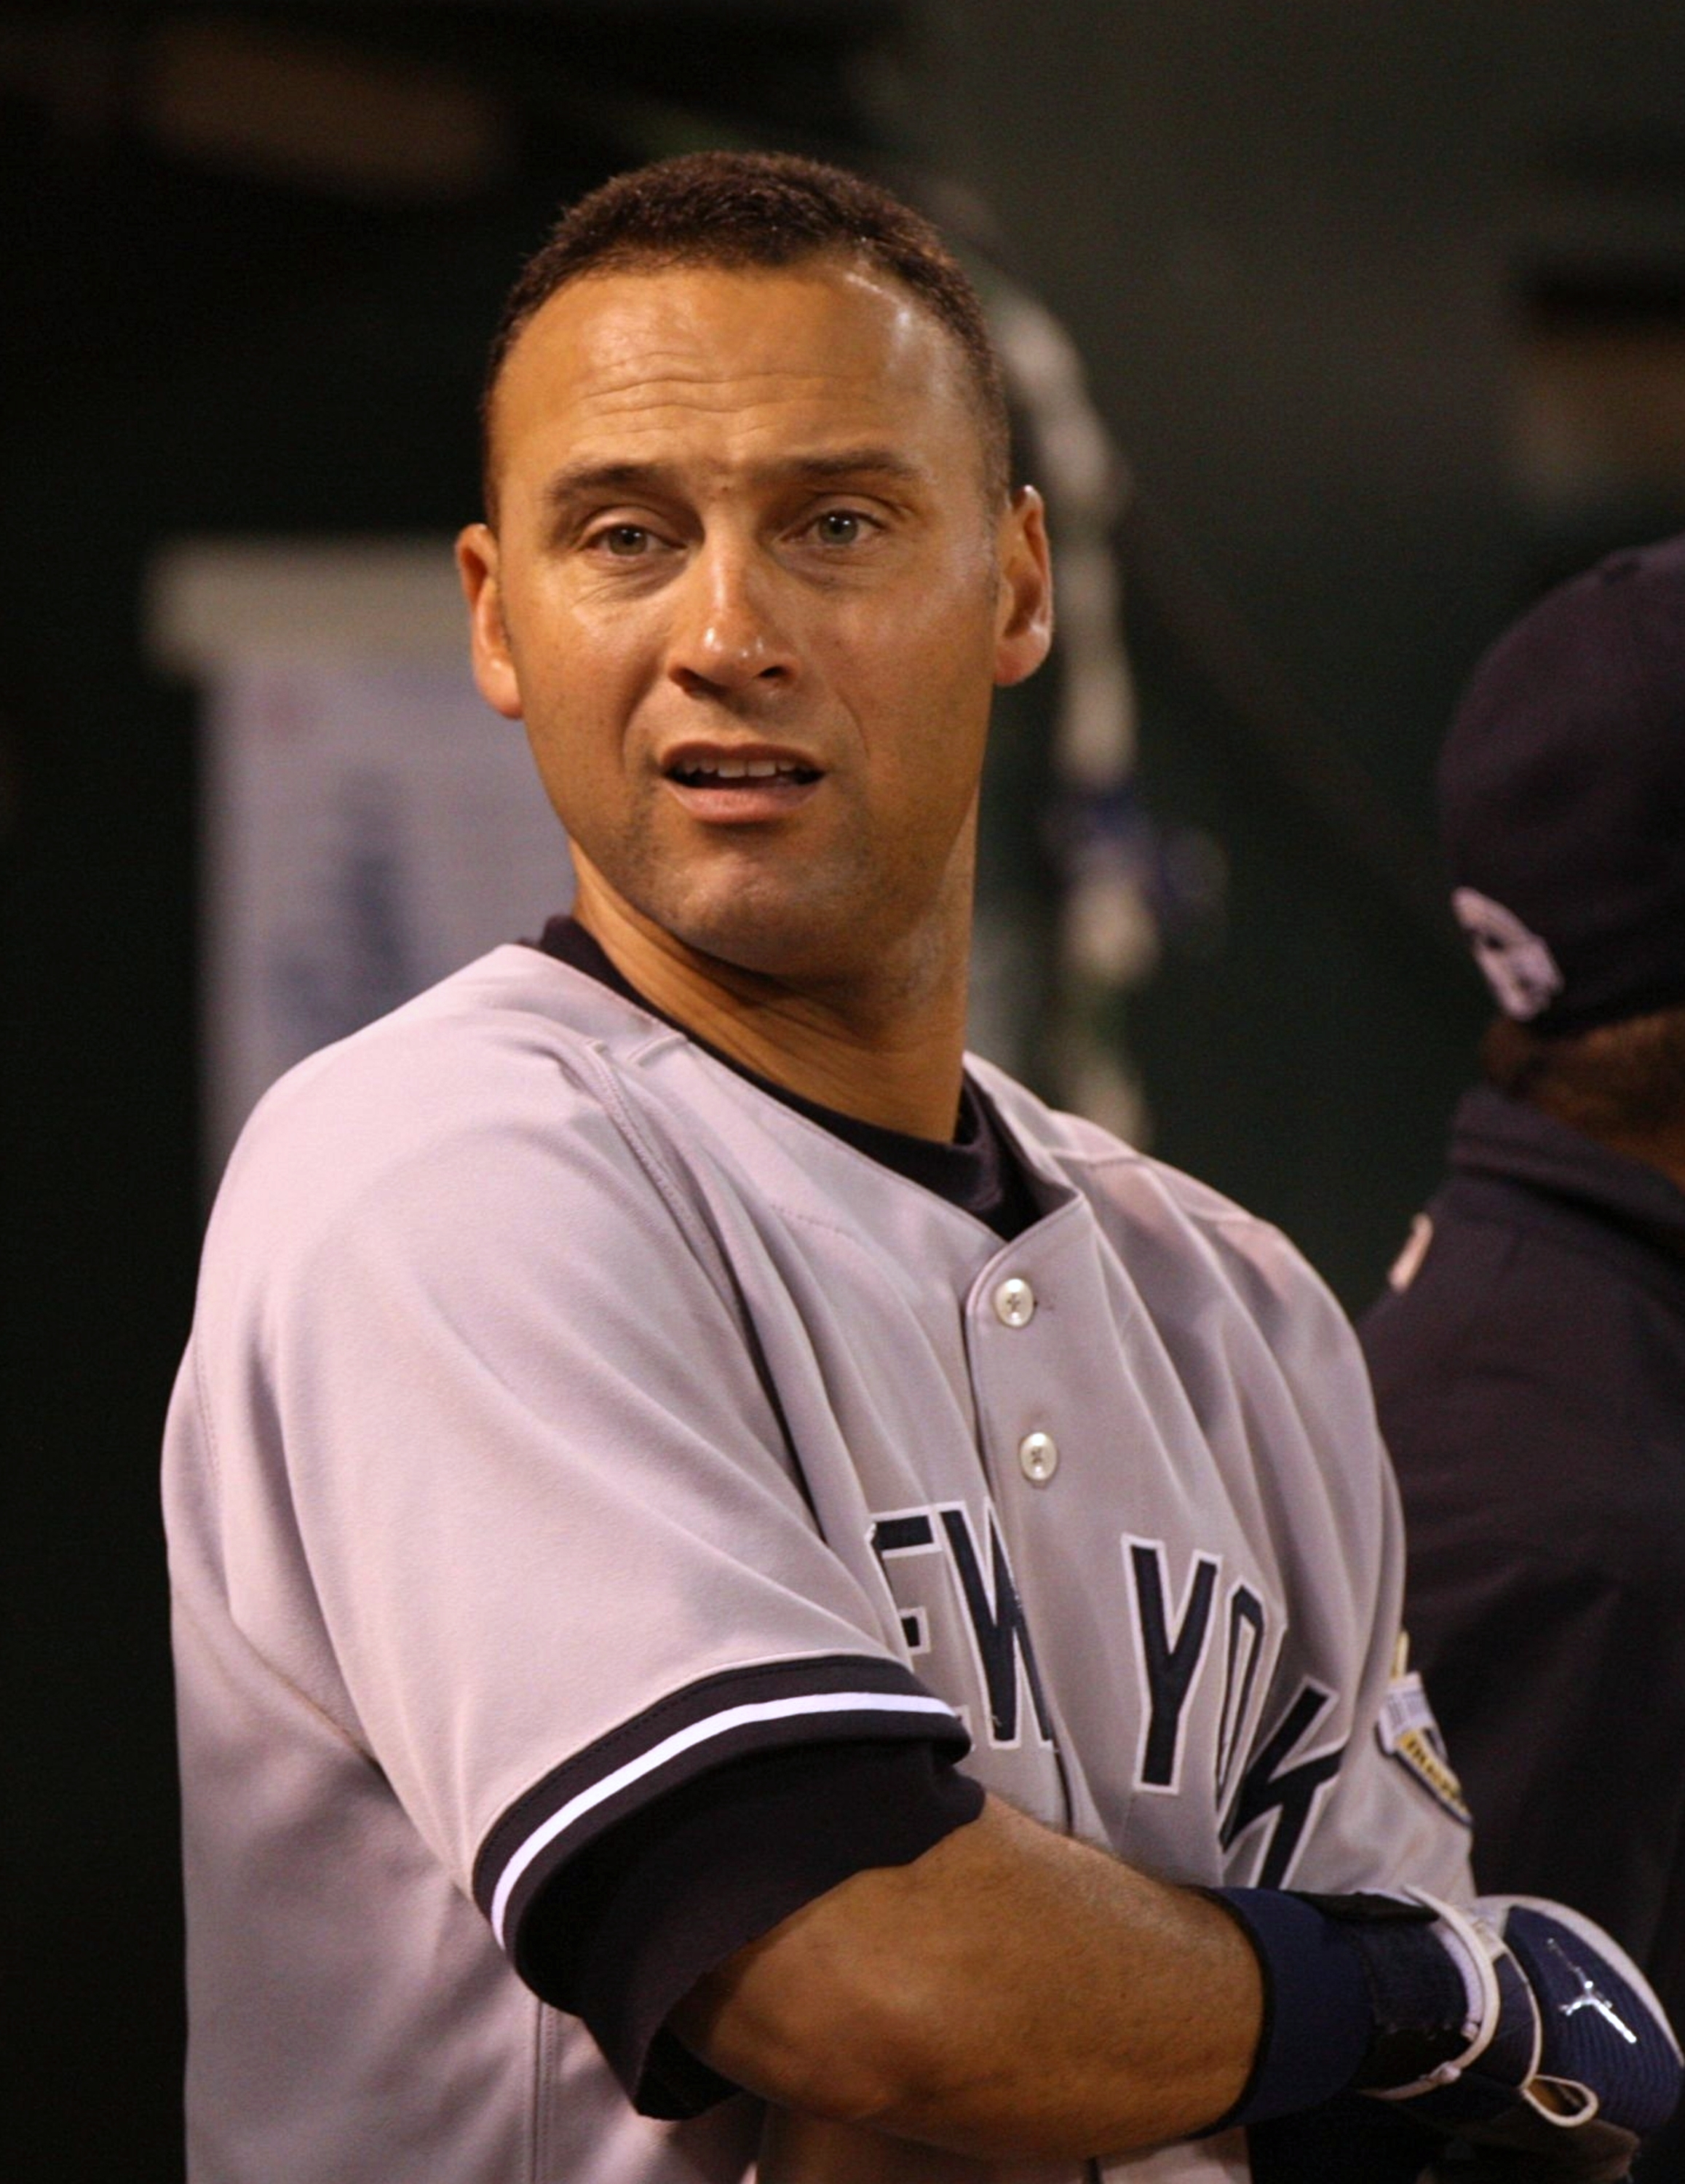 OAKLAND, CA - AUGUST 17:  Derek Jeter #2 of the New York Yankees looks on dejected from the dugout in the ninth inning against the Oakland Athletics during the Major League Baseball game at the Oakland Coliseum on August 17, 2009 in Oakland, California. (